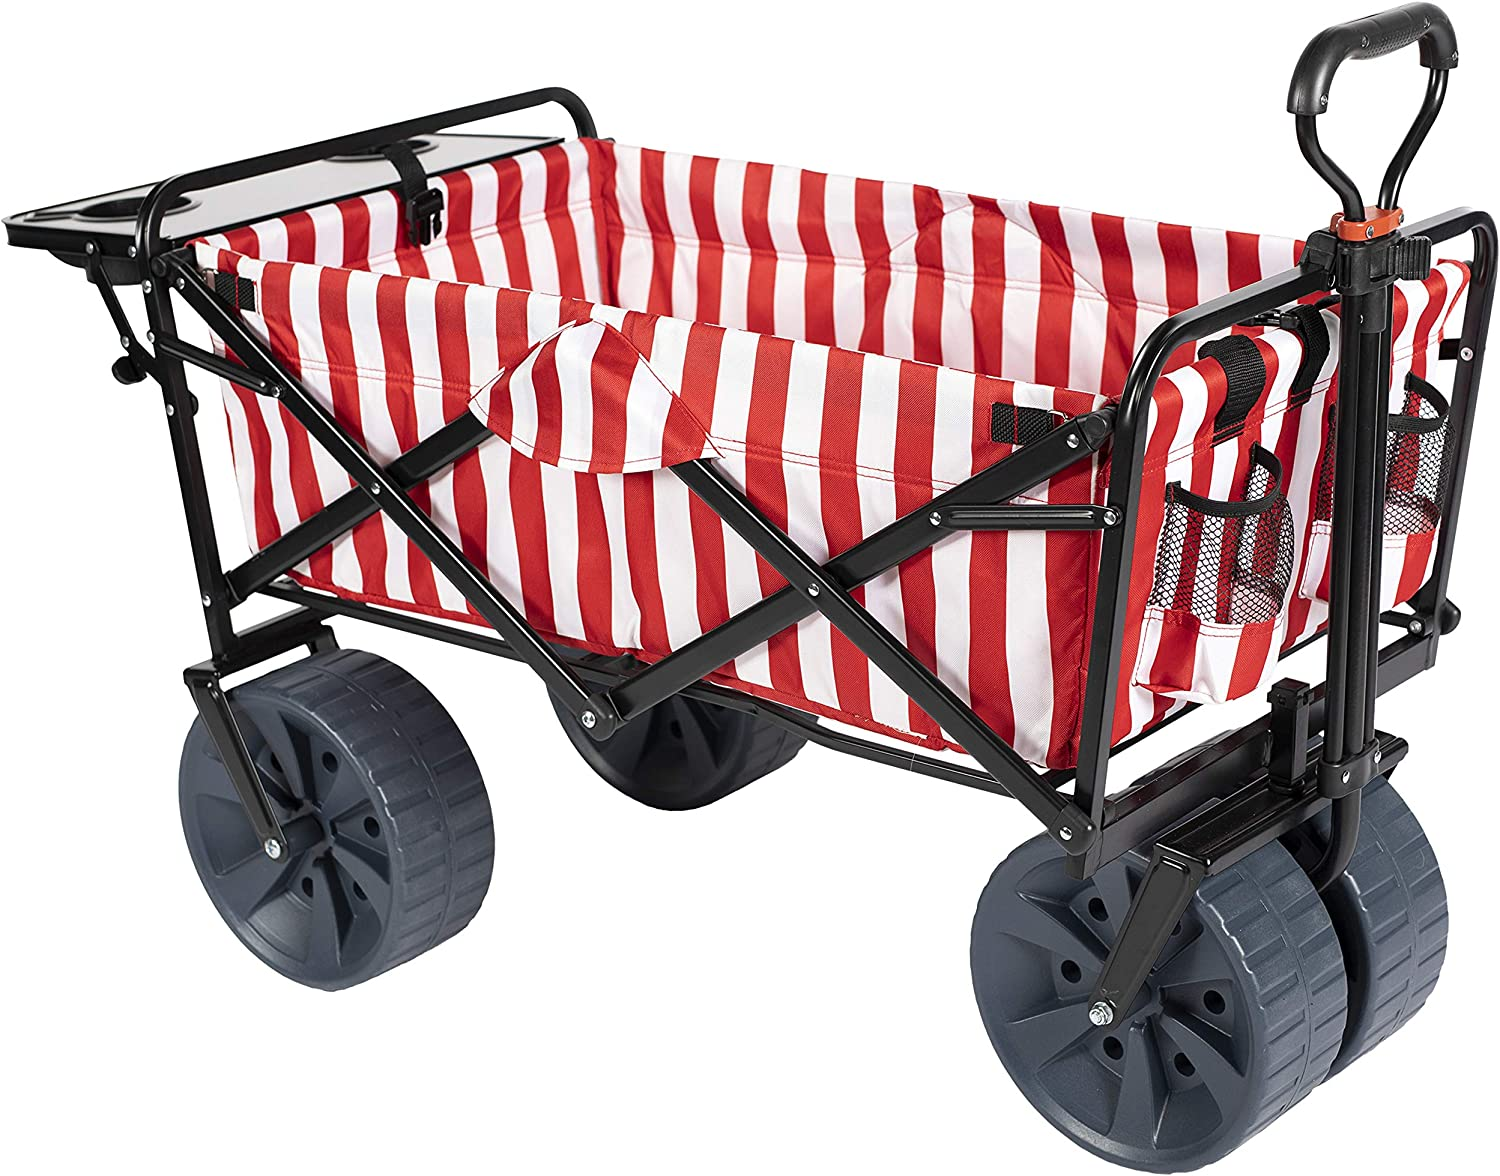 online shopping MacSports Collapsible Outdoor Folding Wagon Side Per with Table Max 53% OFF